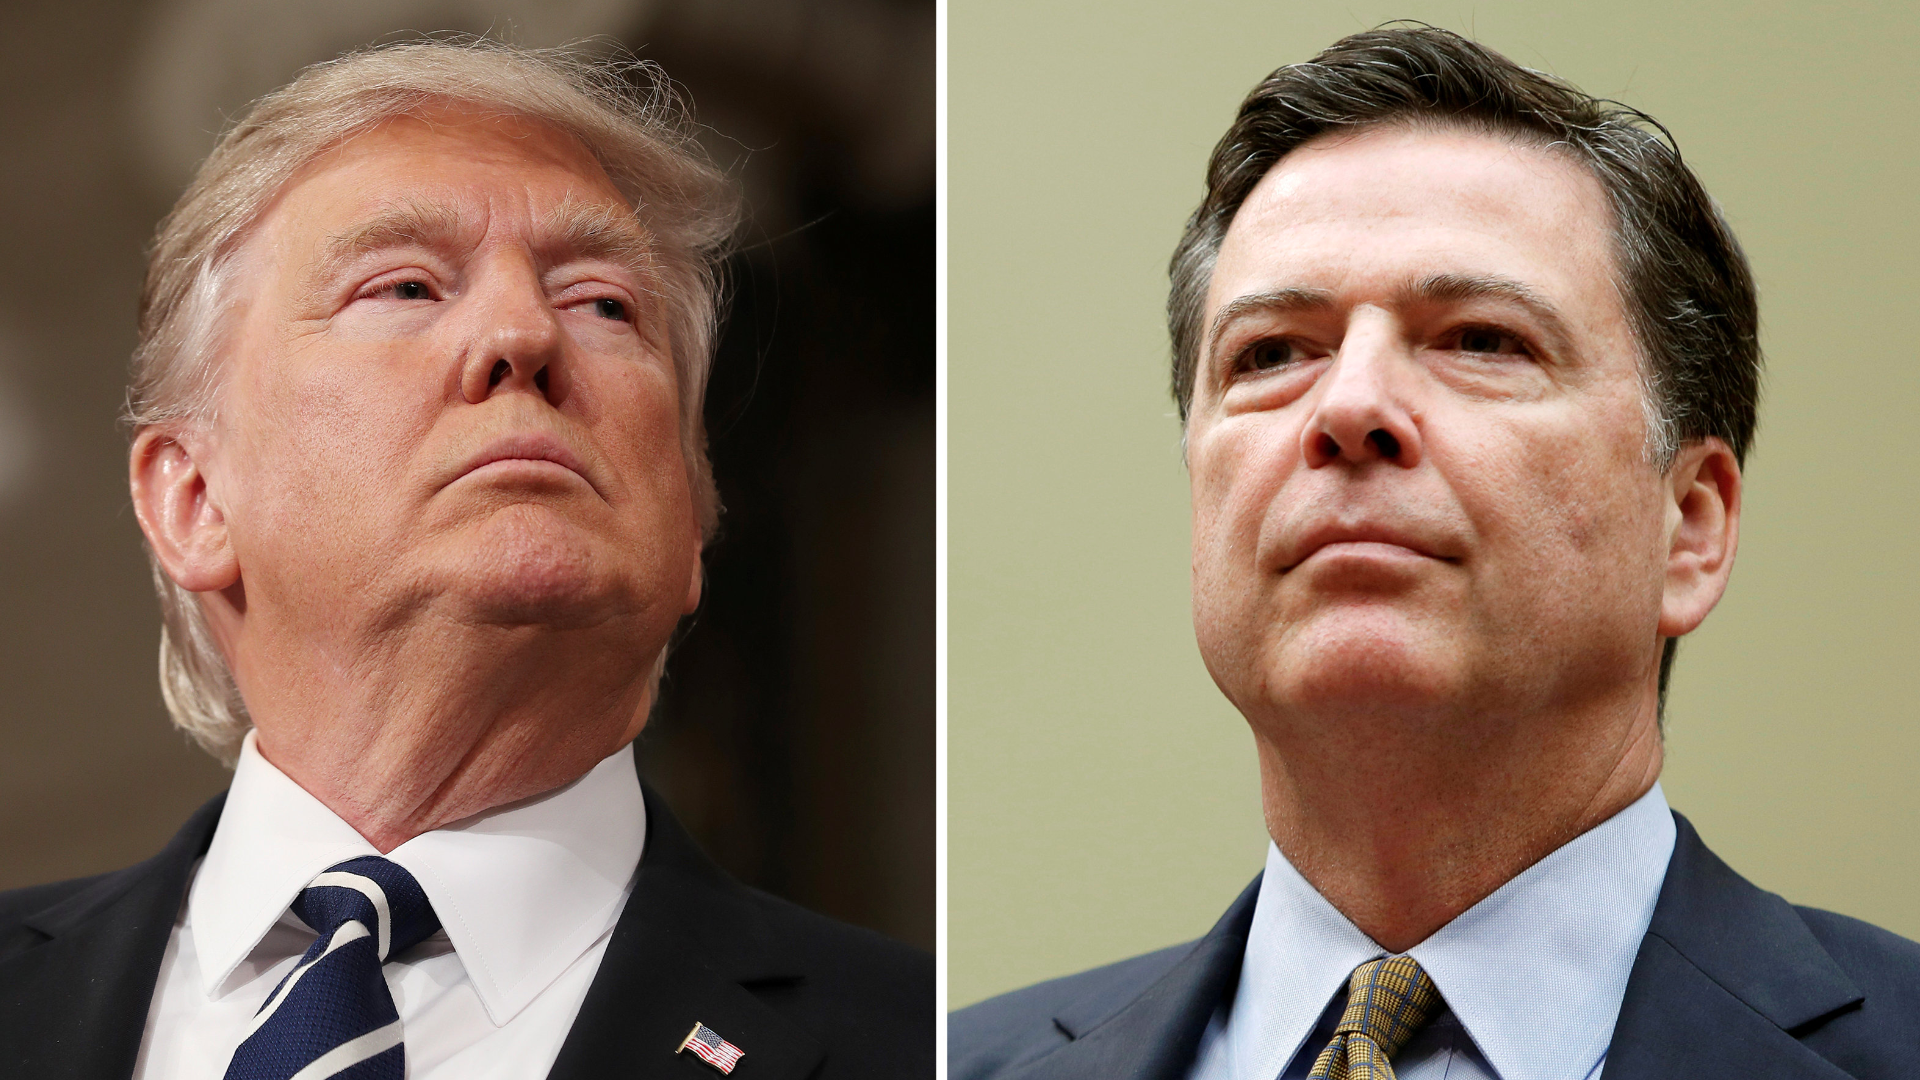 Inside Trump's anger and impatience — and his sudden decision to fire Comey